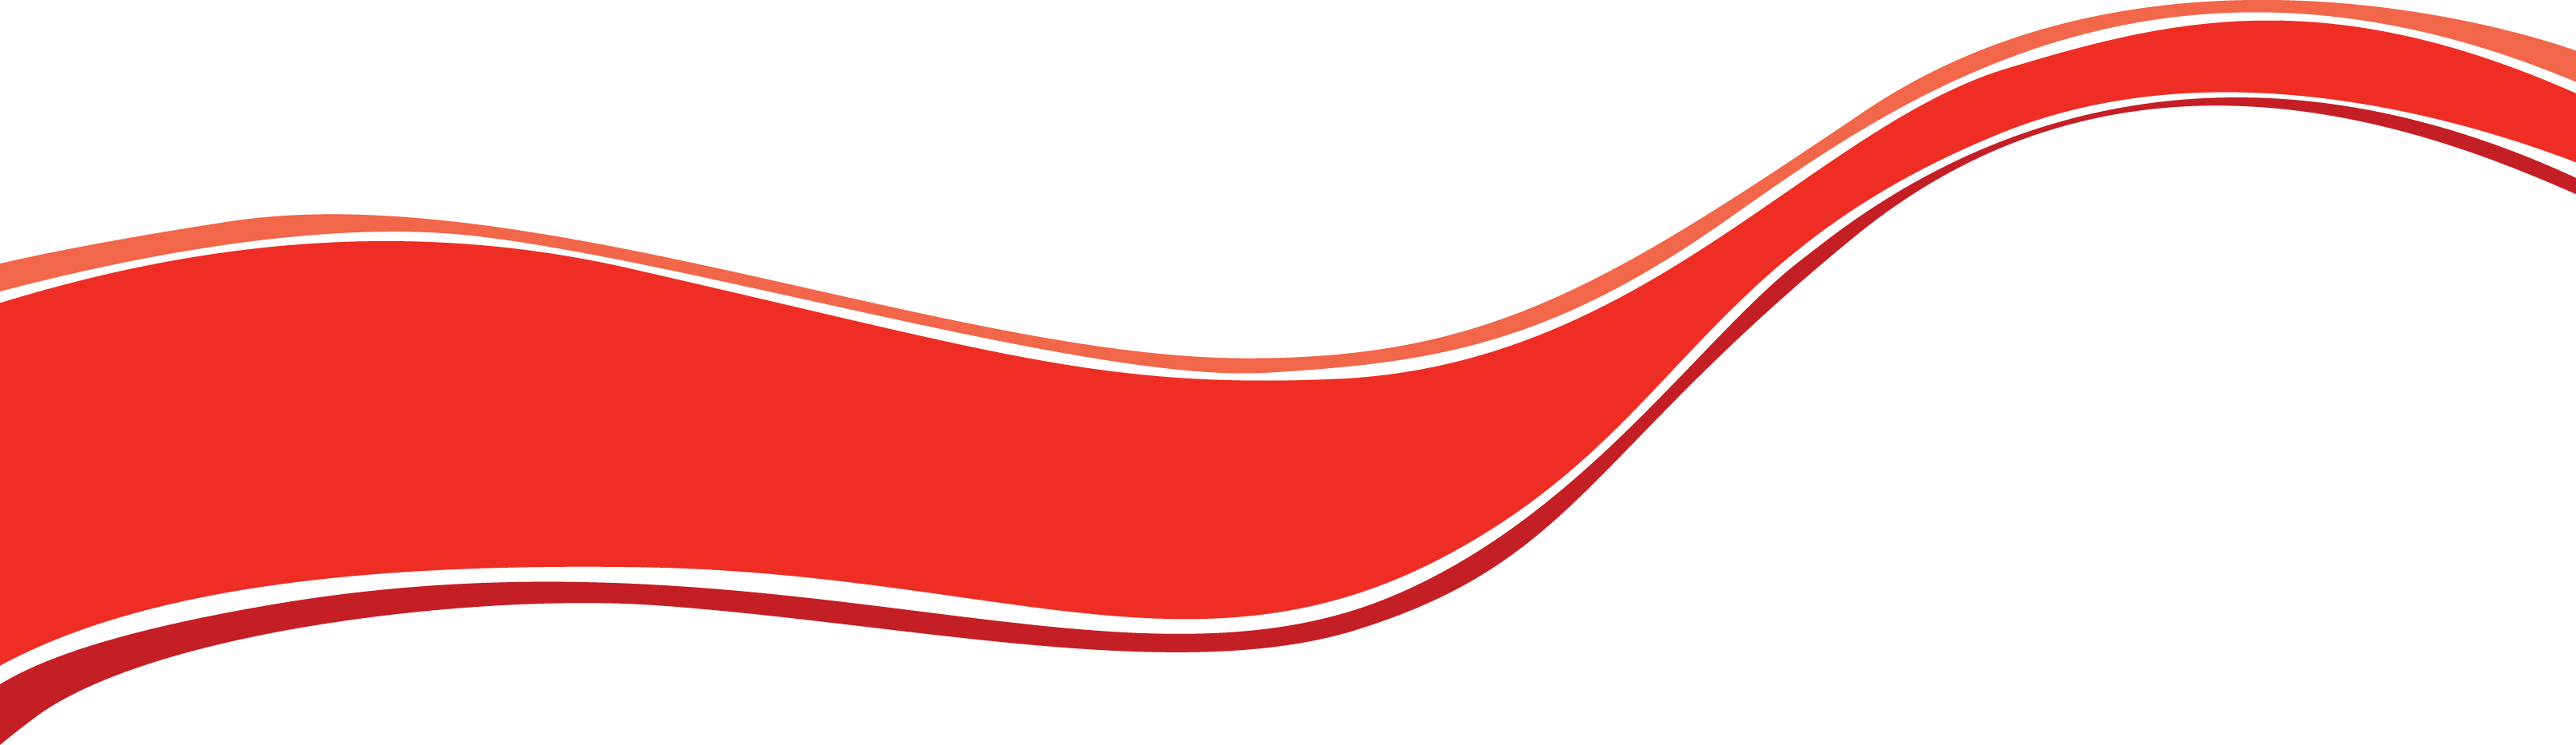 Red background png. Ribbon image purepng free